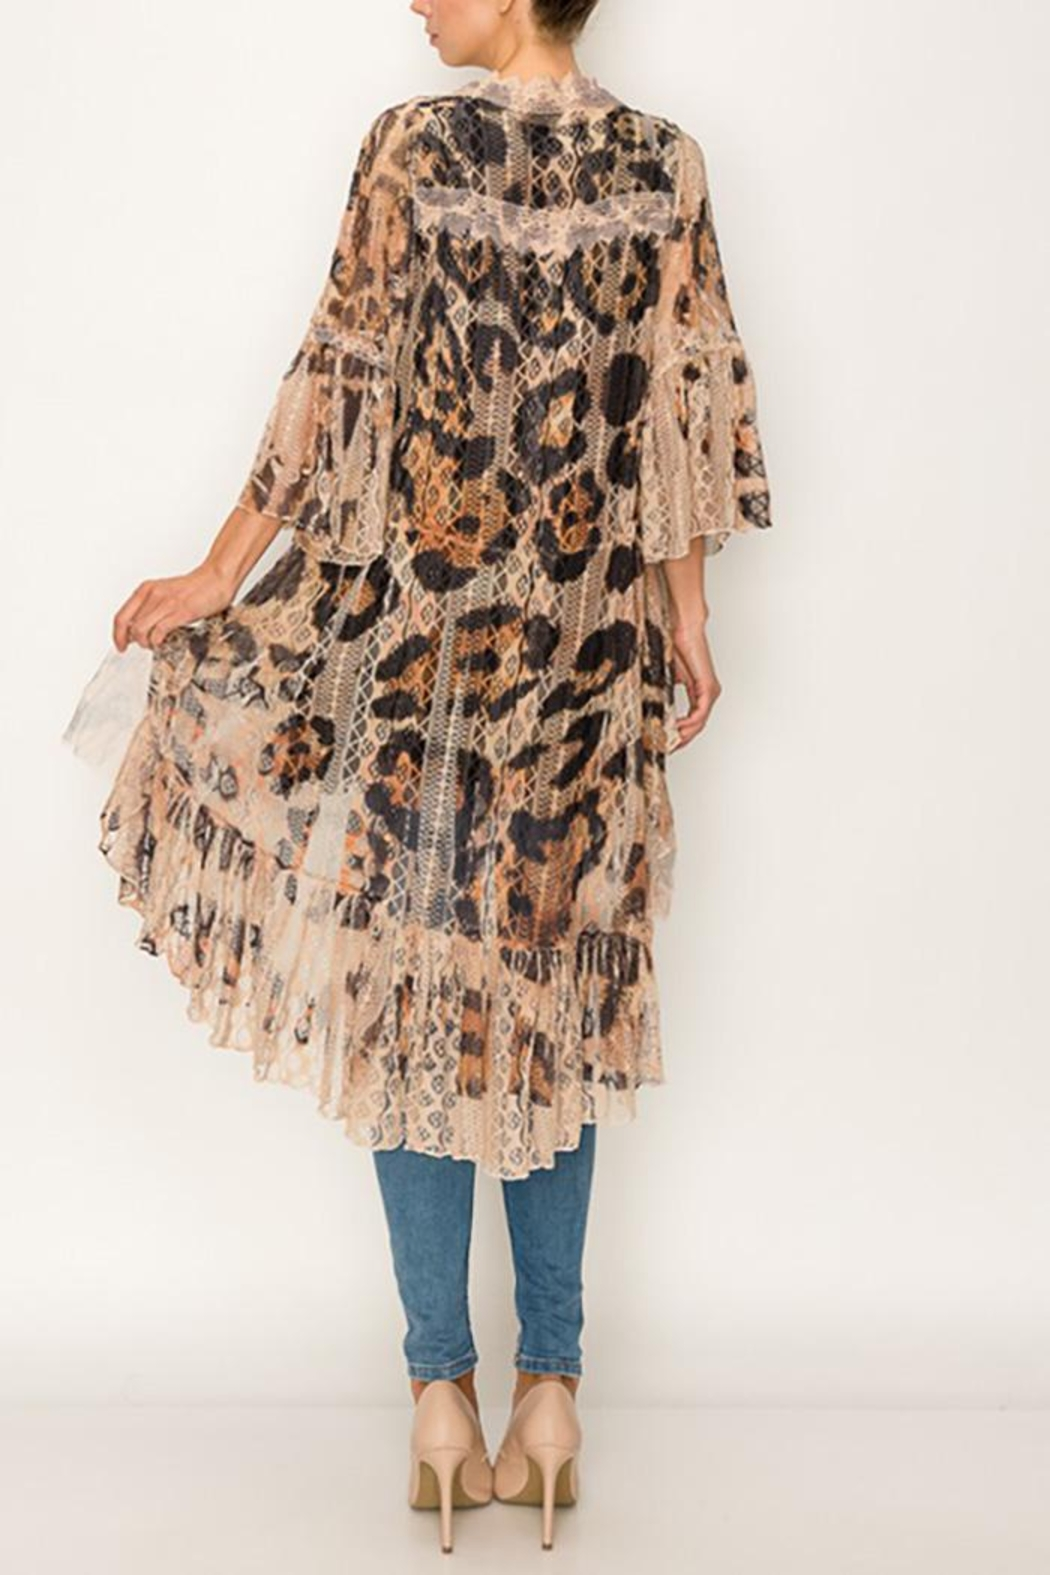 Origami All Lace Leopard Printed Cardigan - Front Full Image